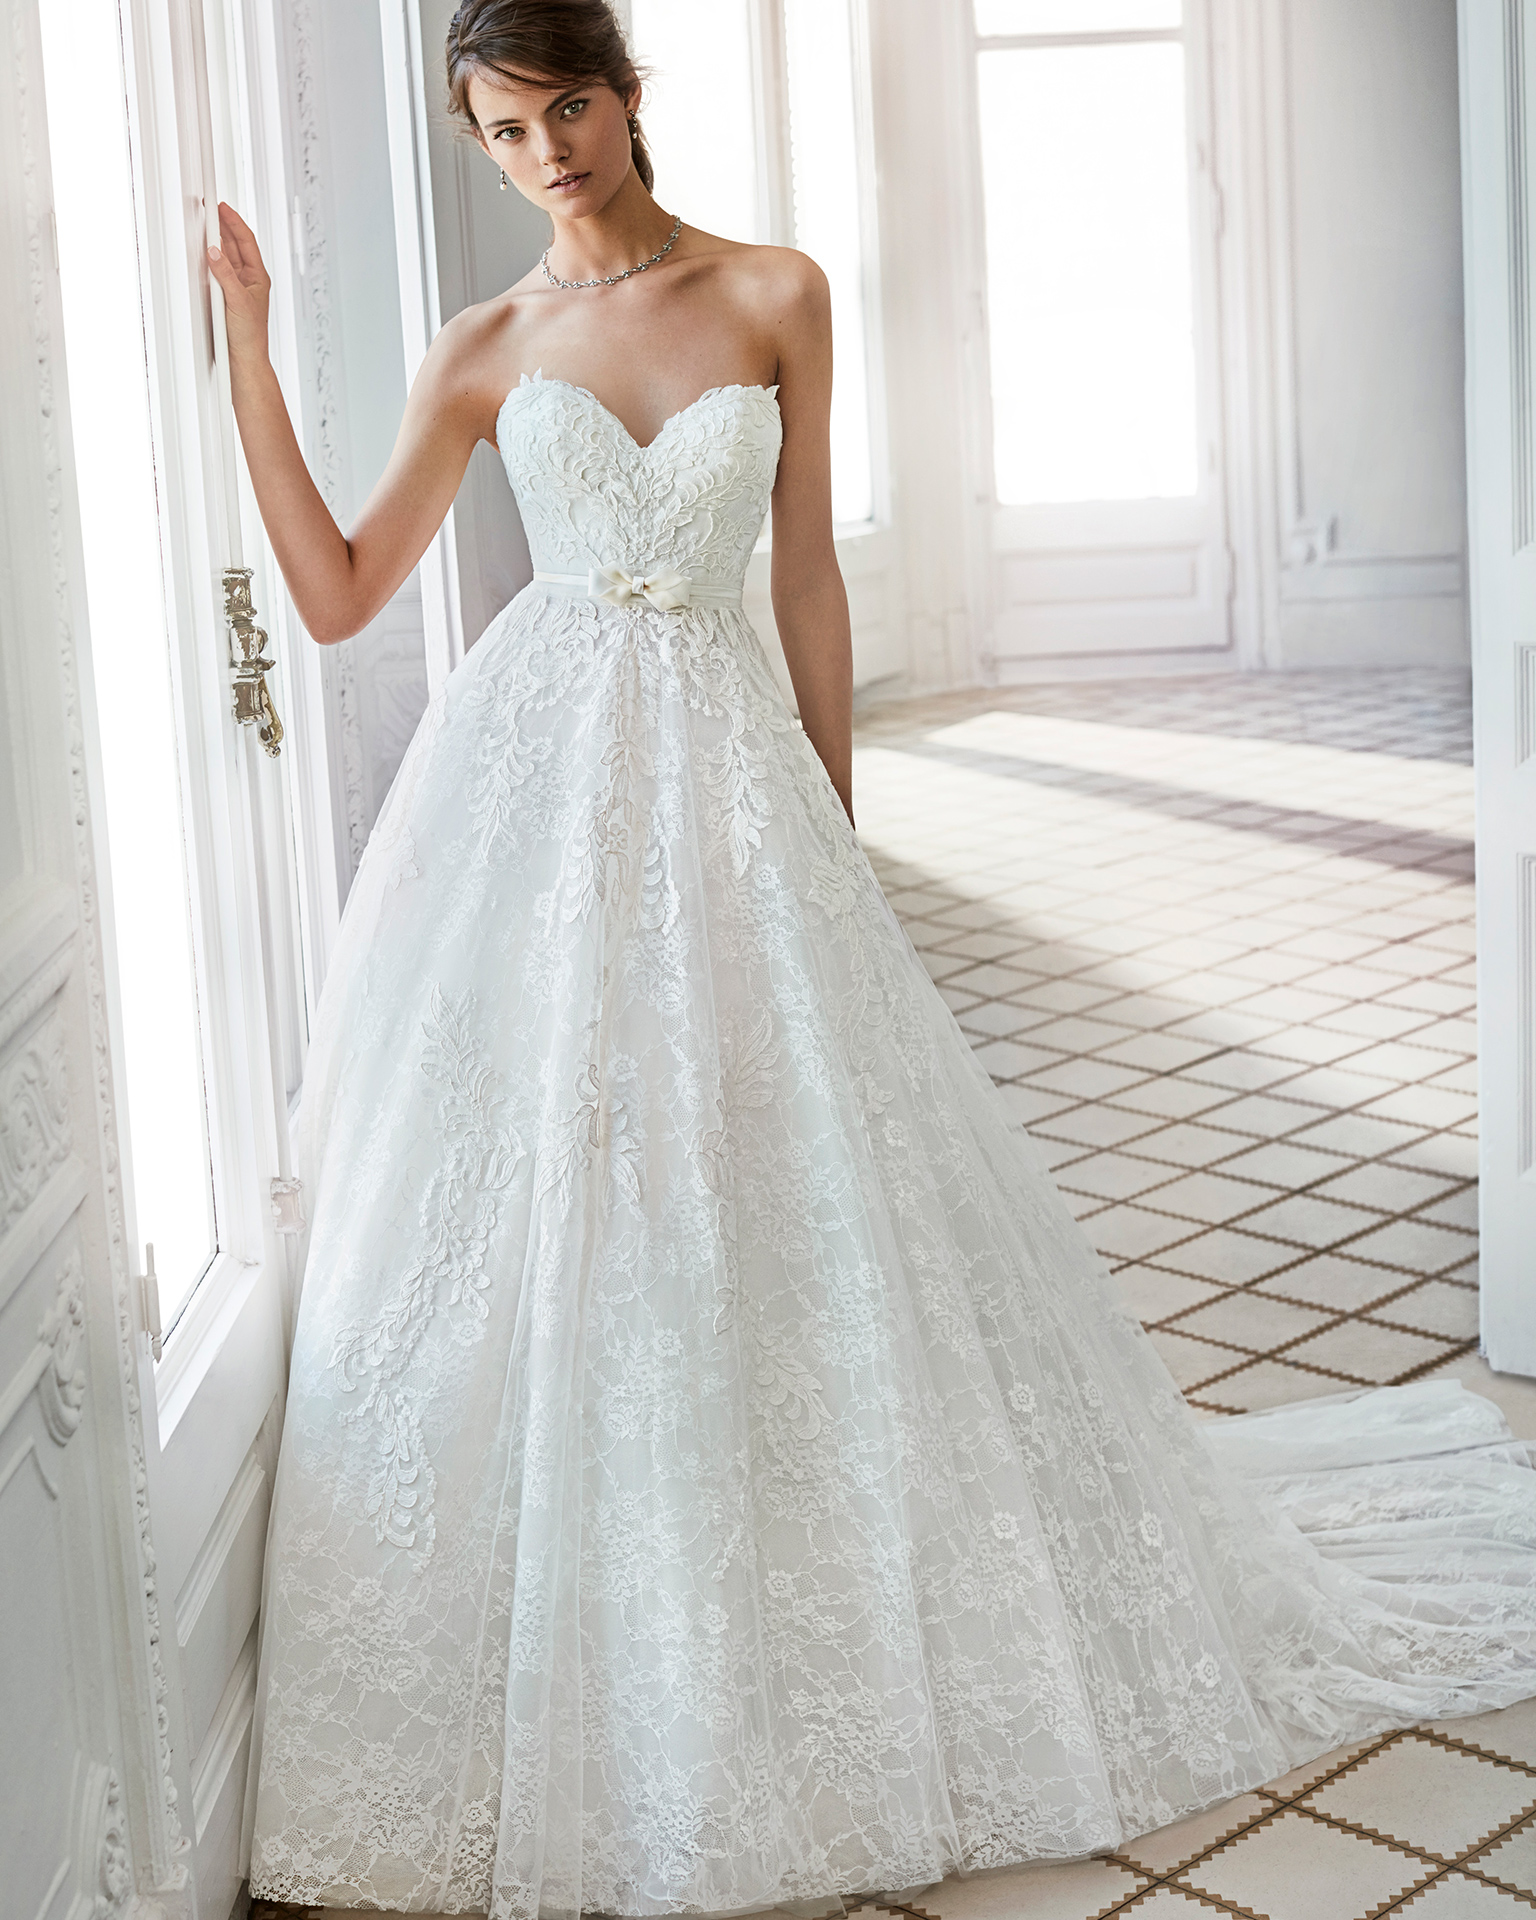 A-line lace wedding dress with sweetheart neckline.